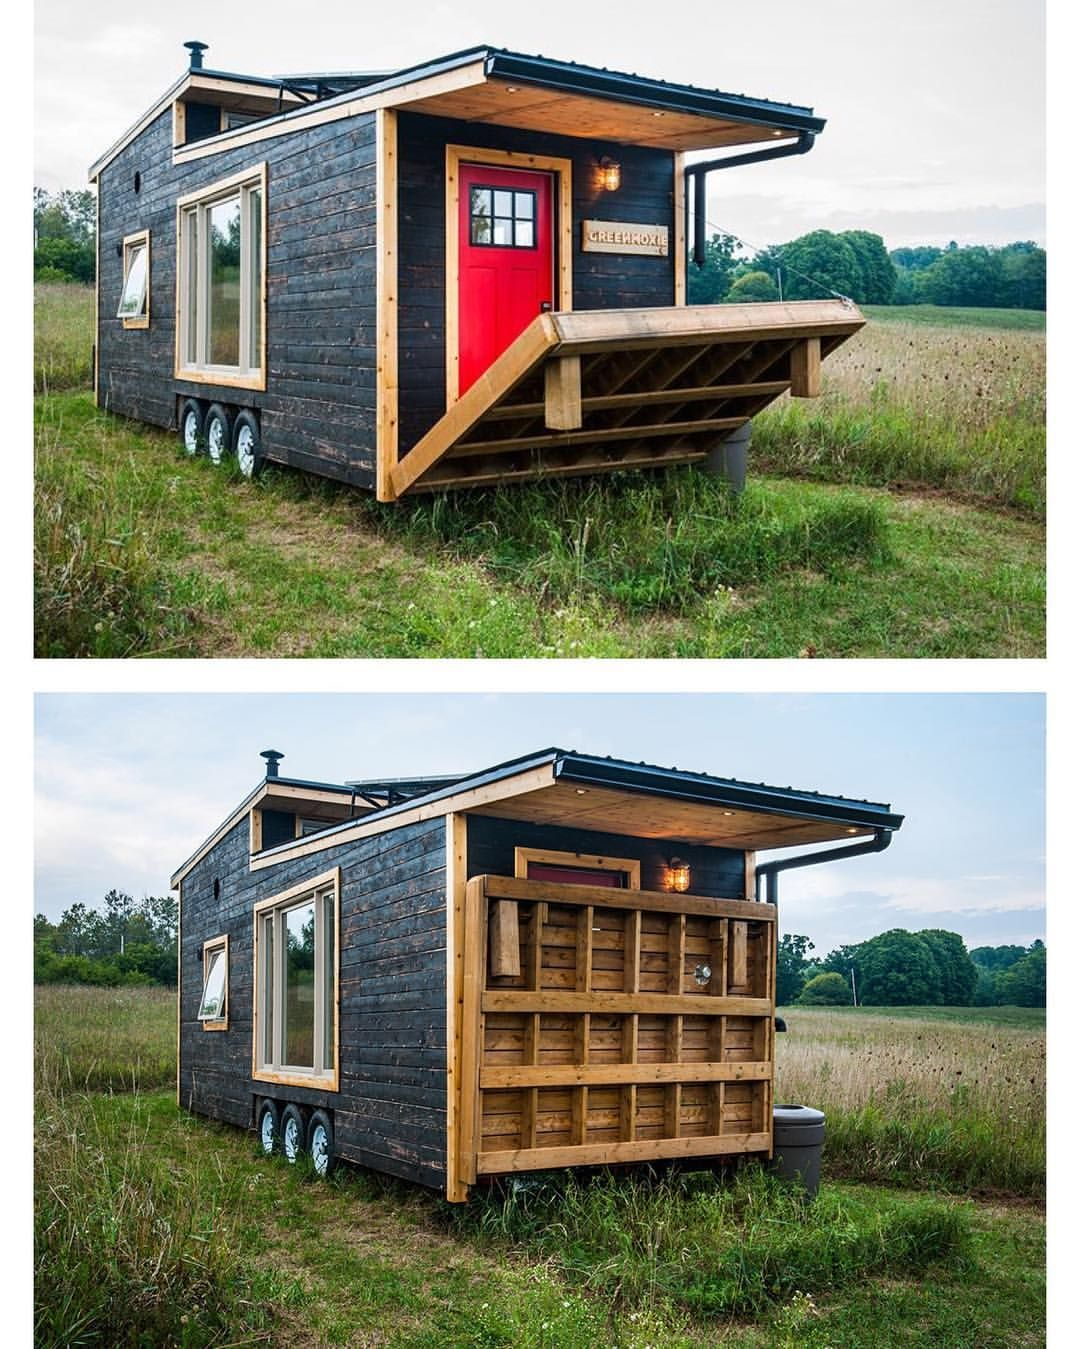 3 577 Likes 16 Comments Prefab Small Homes